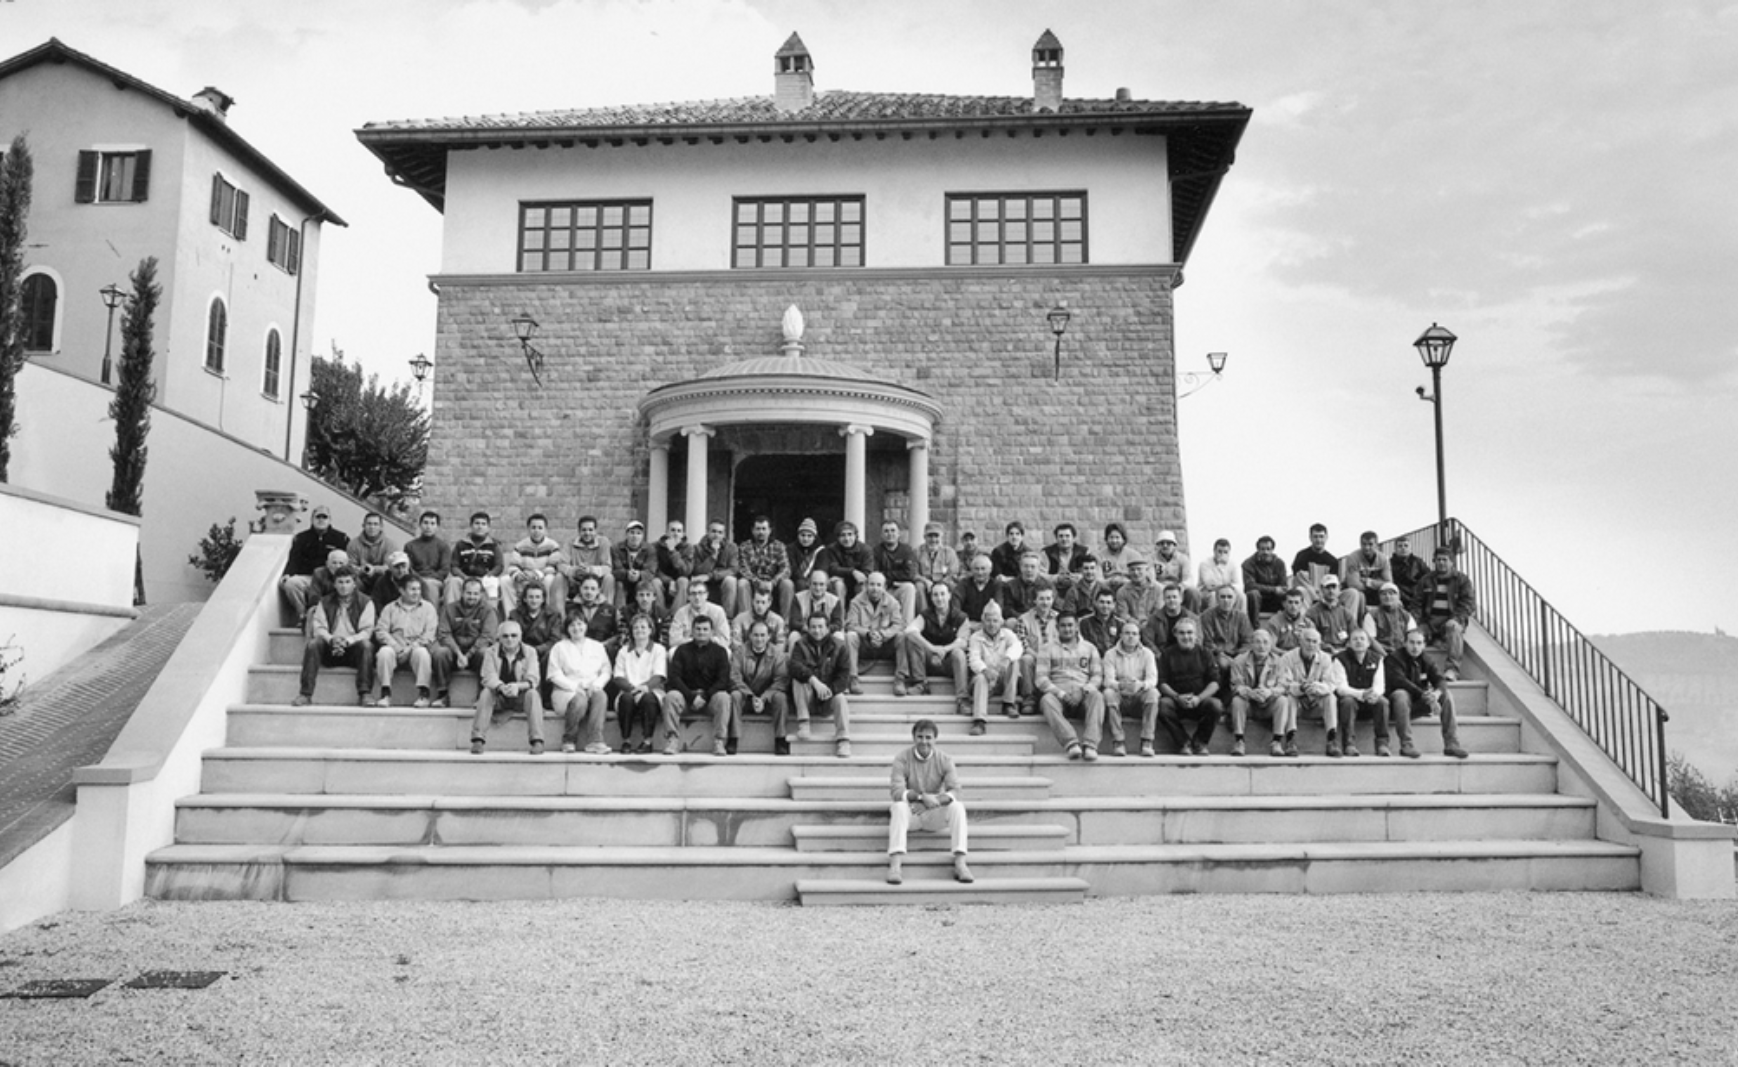 Brunello Cucinelli and the workers that made his theater